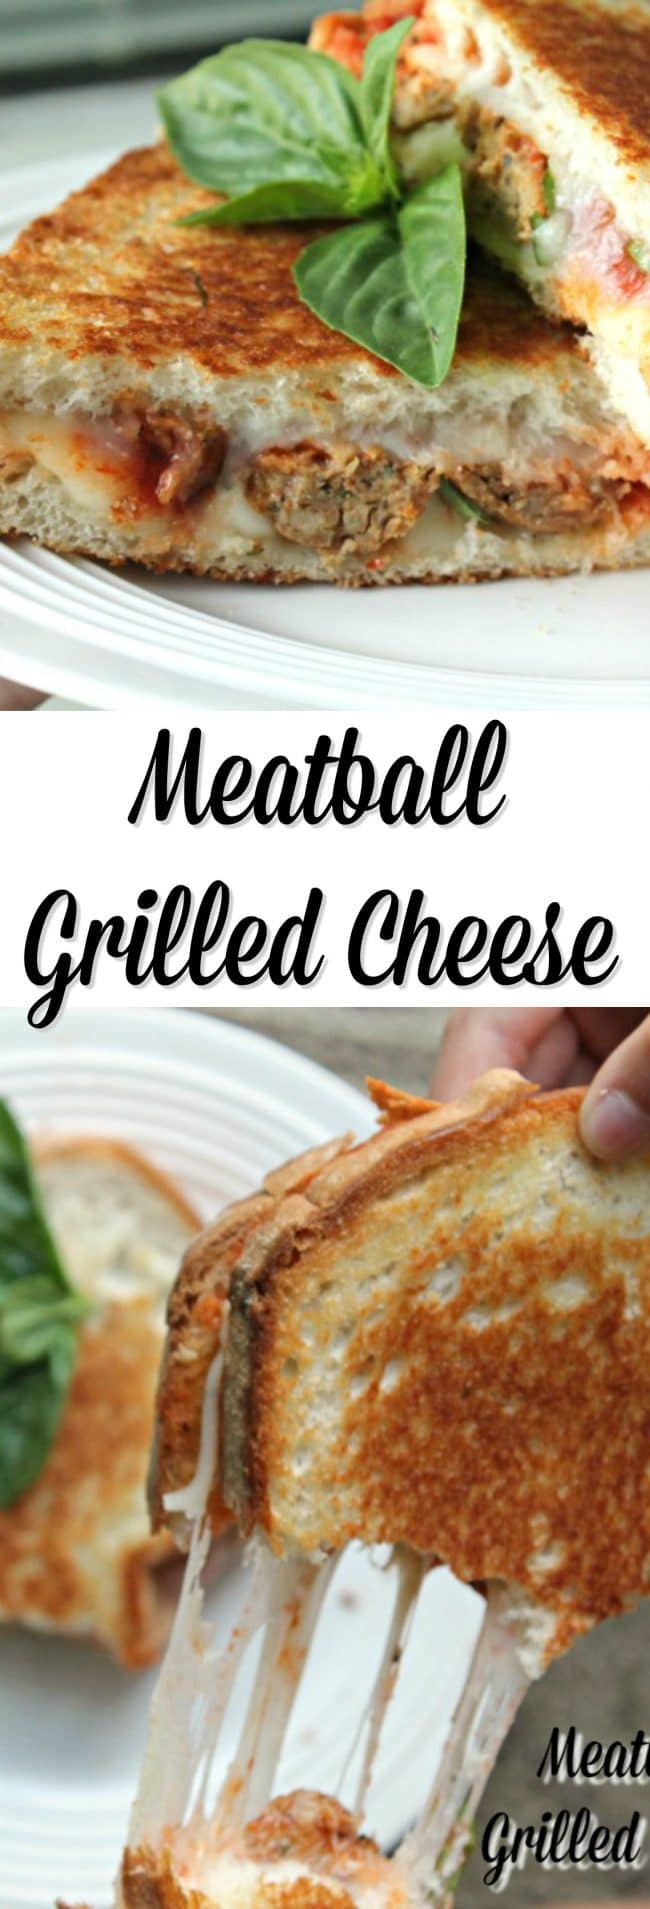 Meatball Grilled Cheese Sandwich - Foody Schmoody Blog | Foody ...